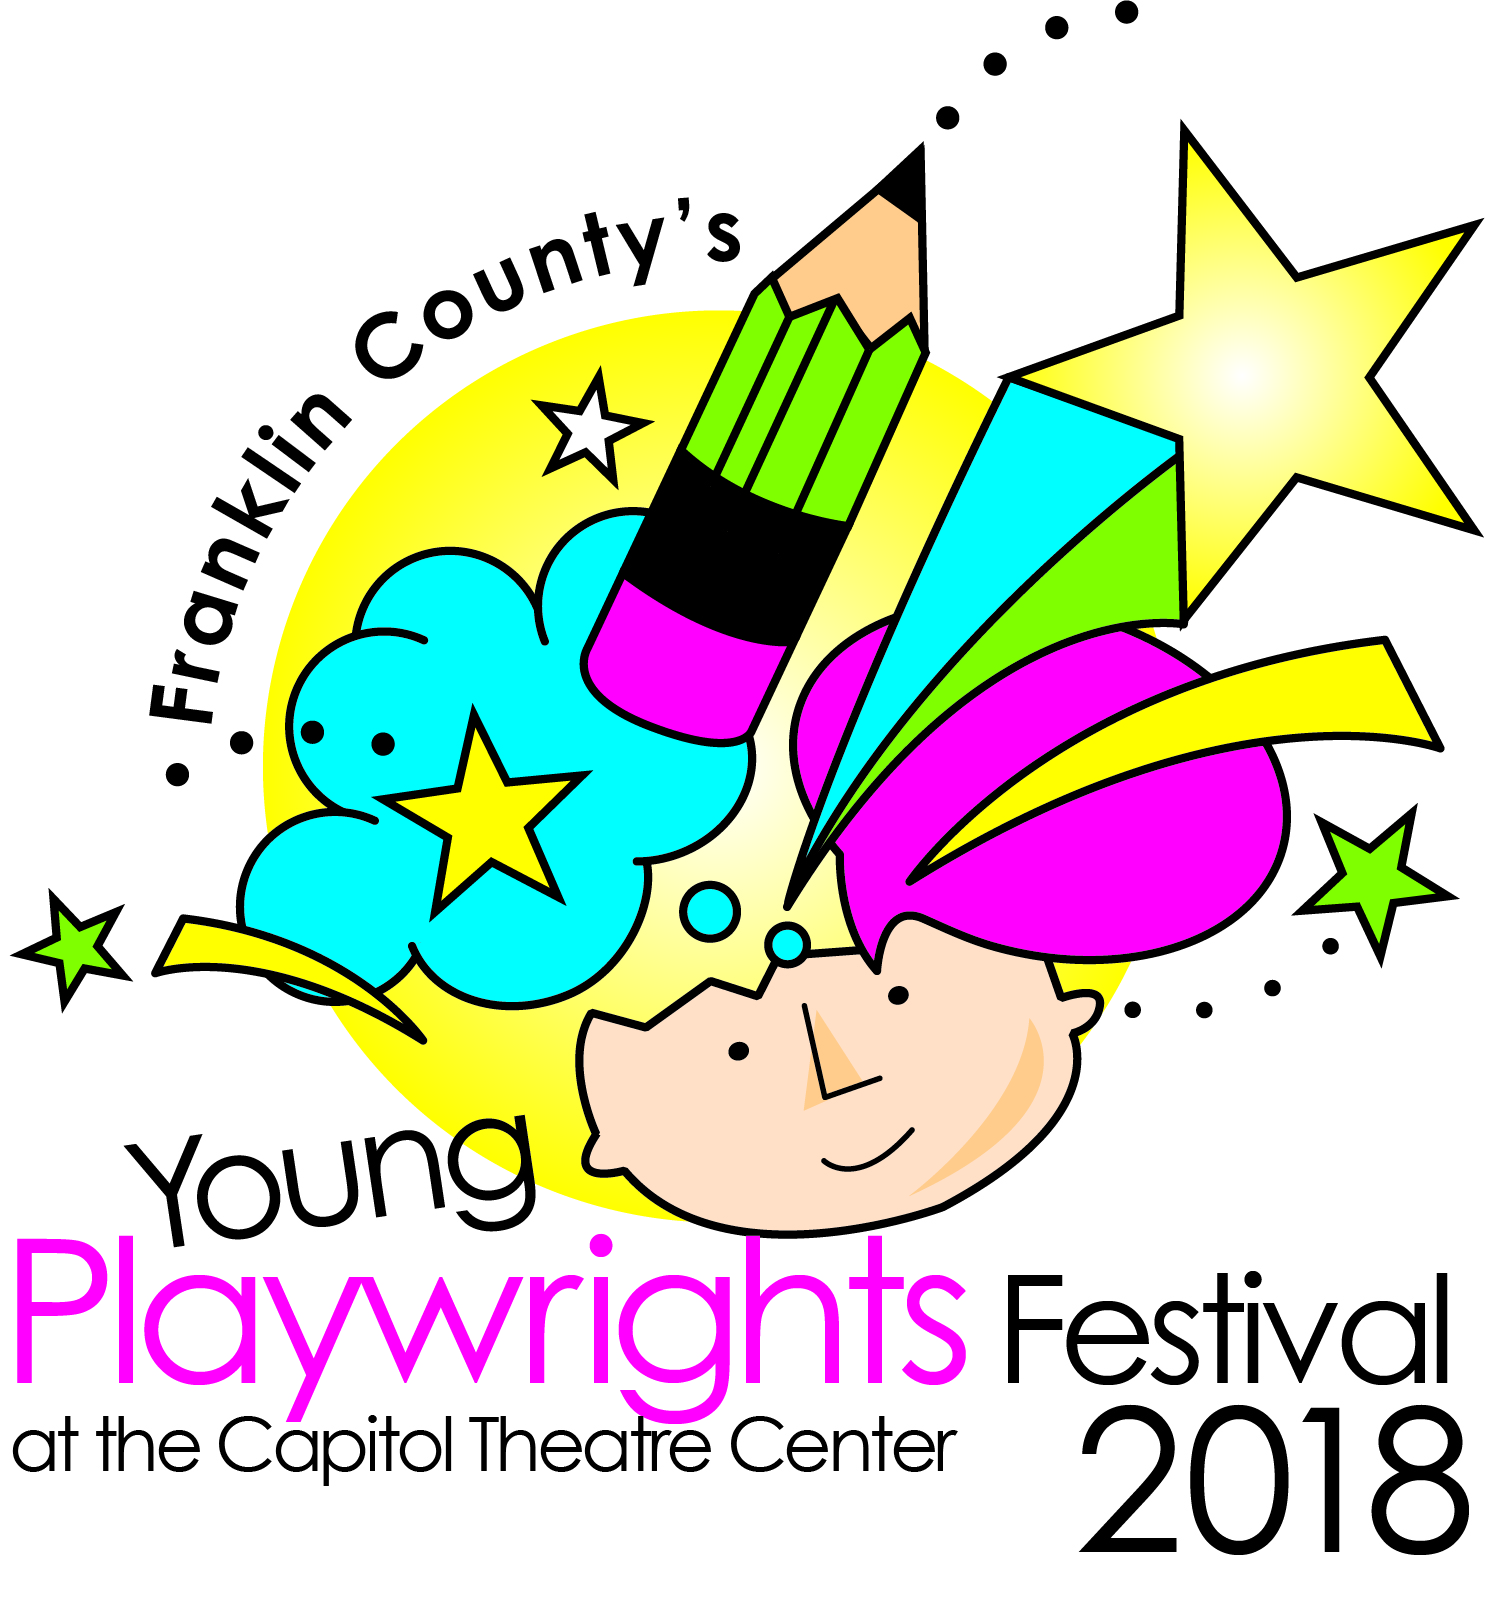 Submissions for Capitol Theatre's Franklin County Young Playwrights Festival to open Oct. 2